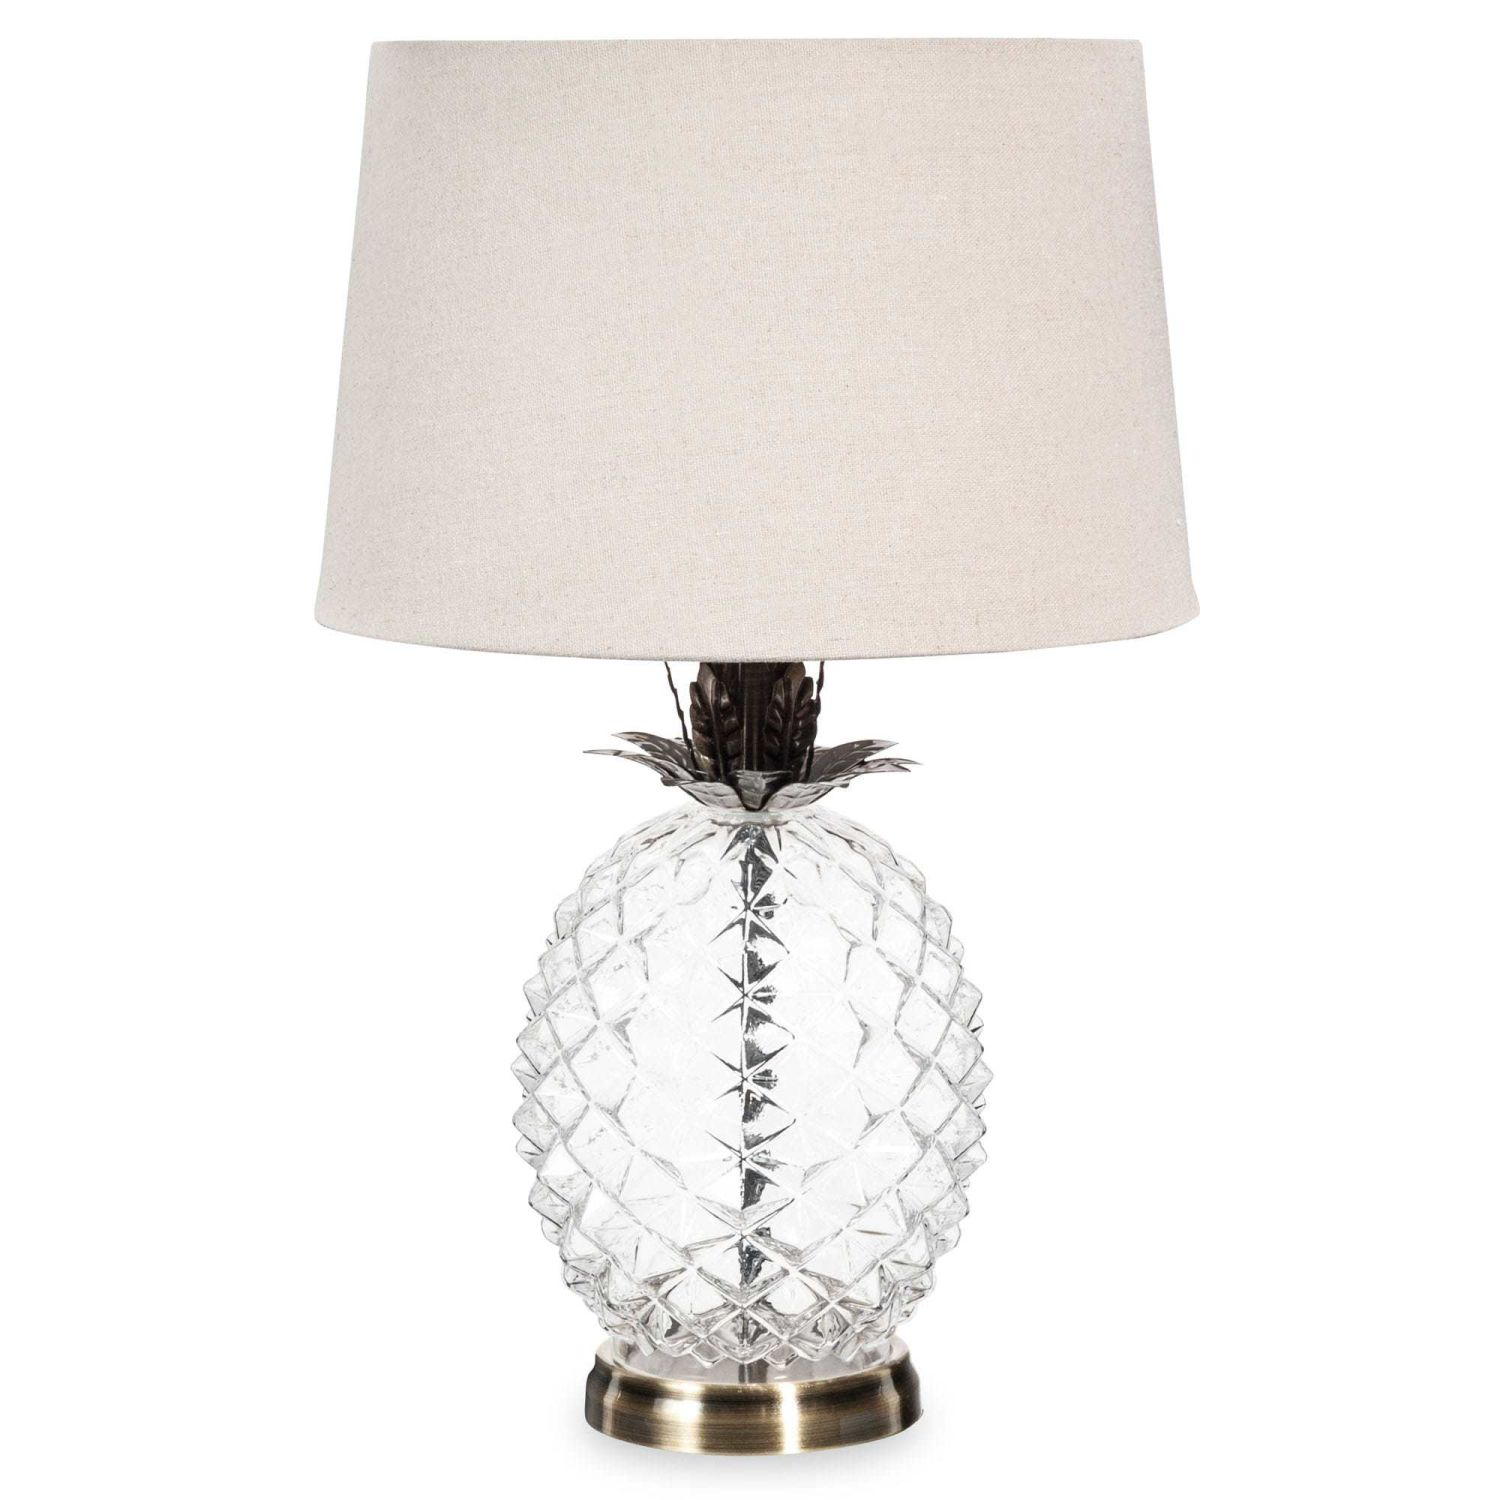 lampe ananas en verre abat jour beige maisons du monde. Black Bedroom Furniture Sets. Home Design Ideas